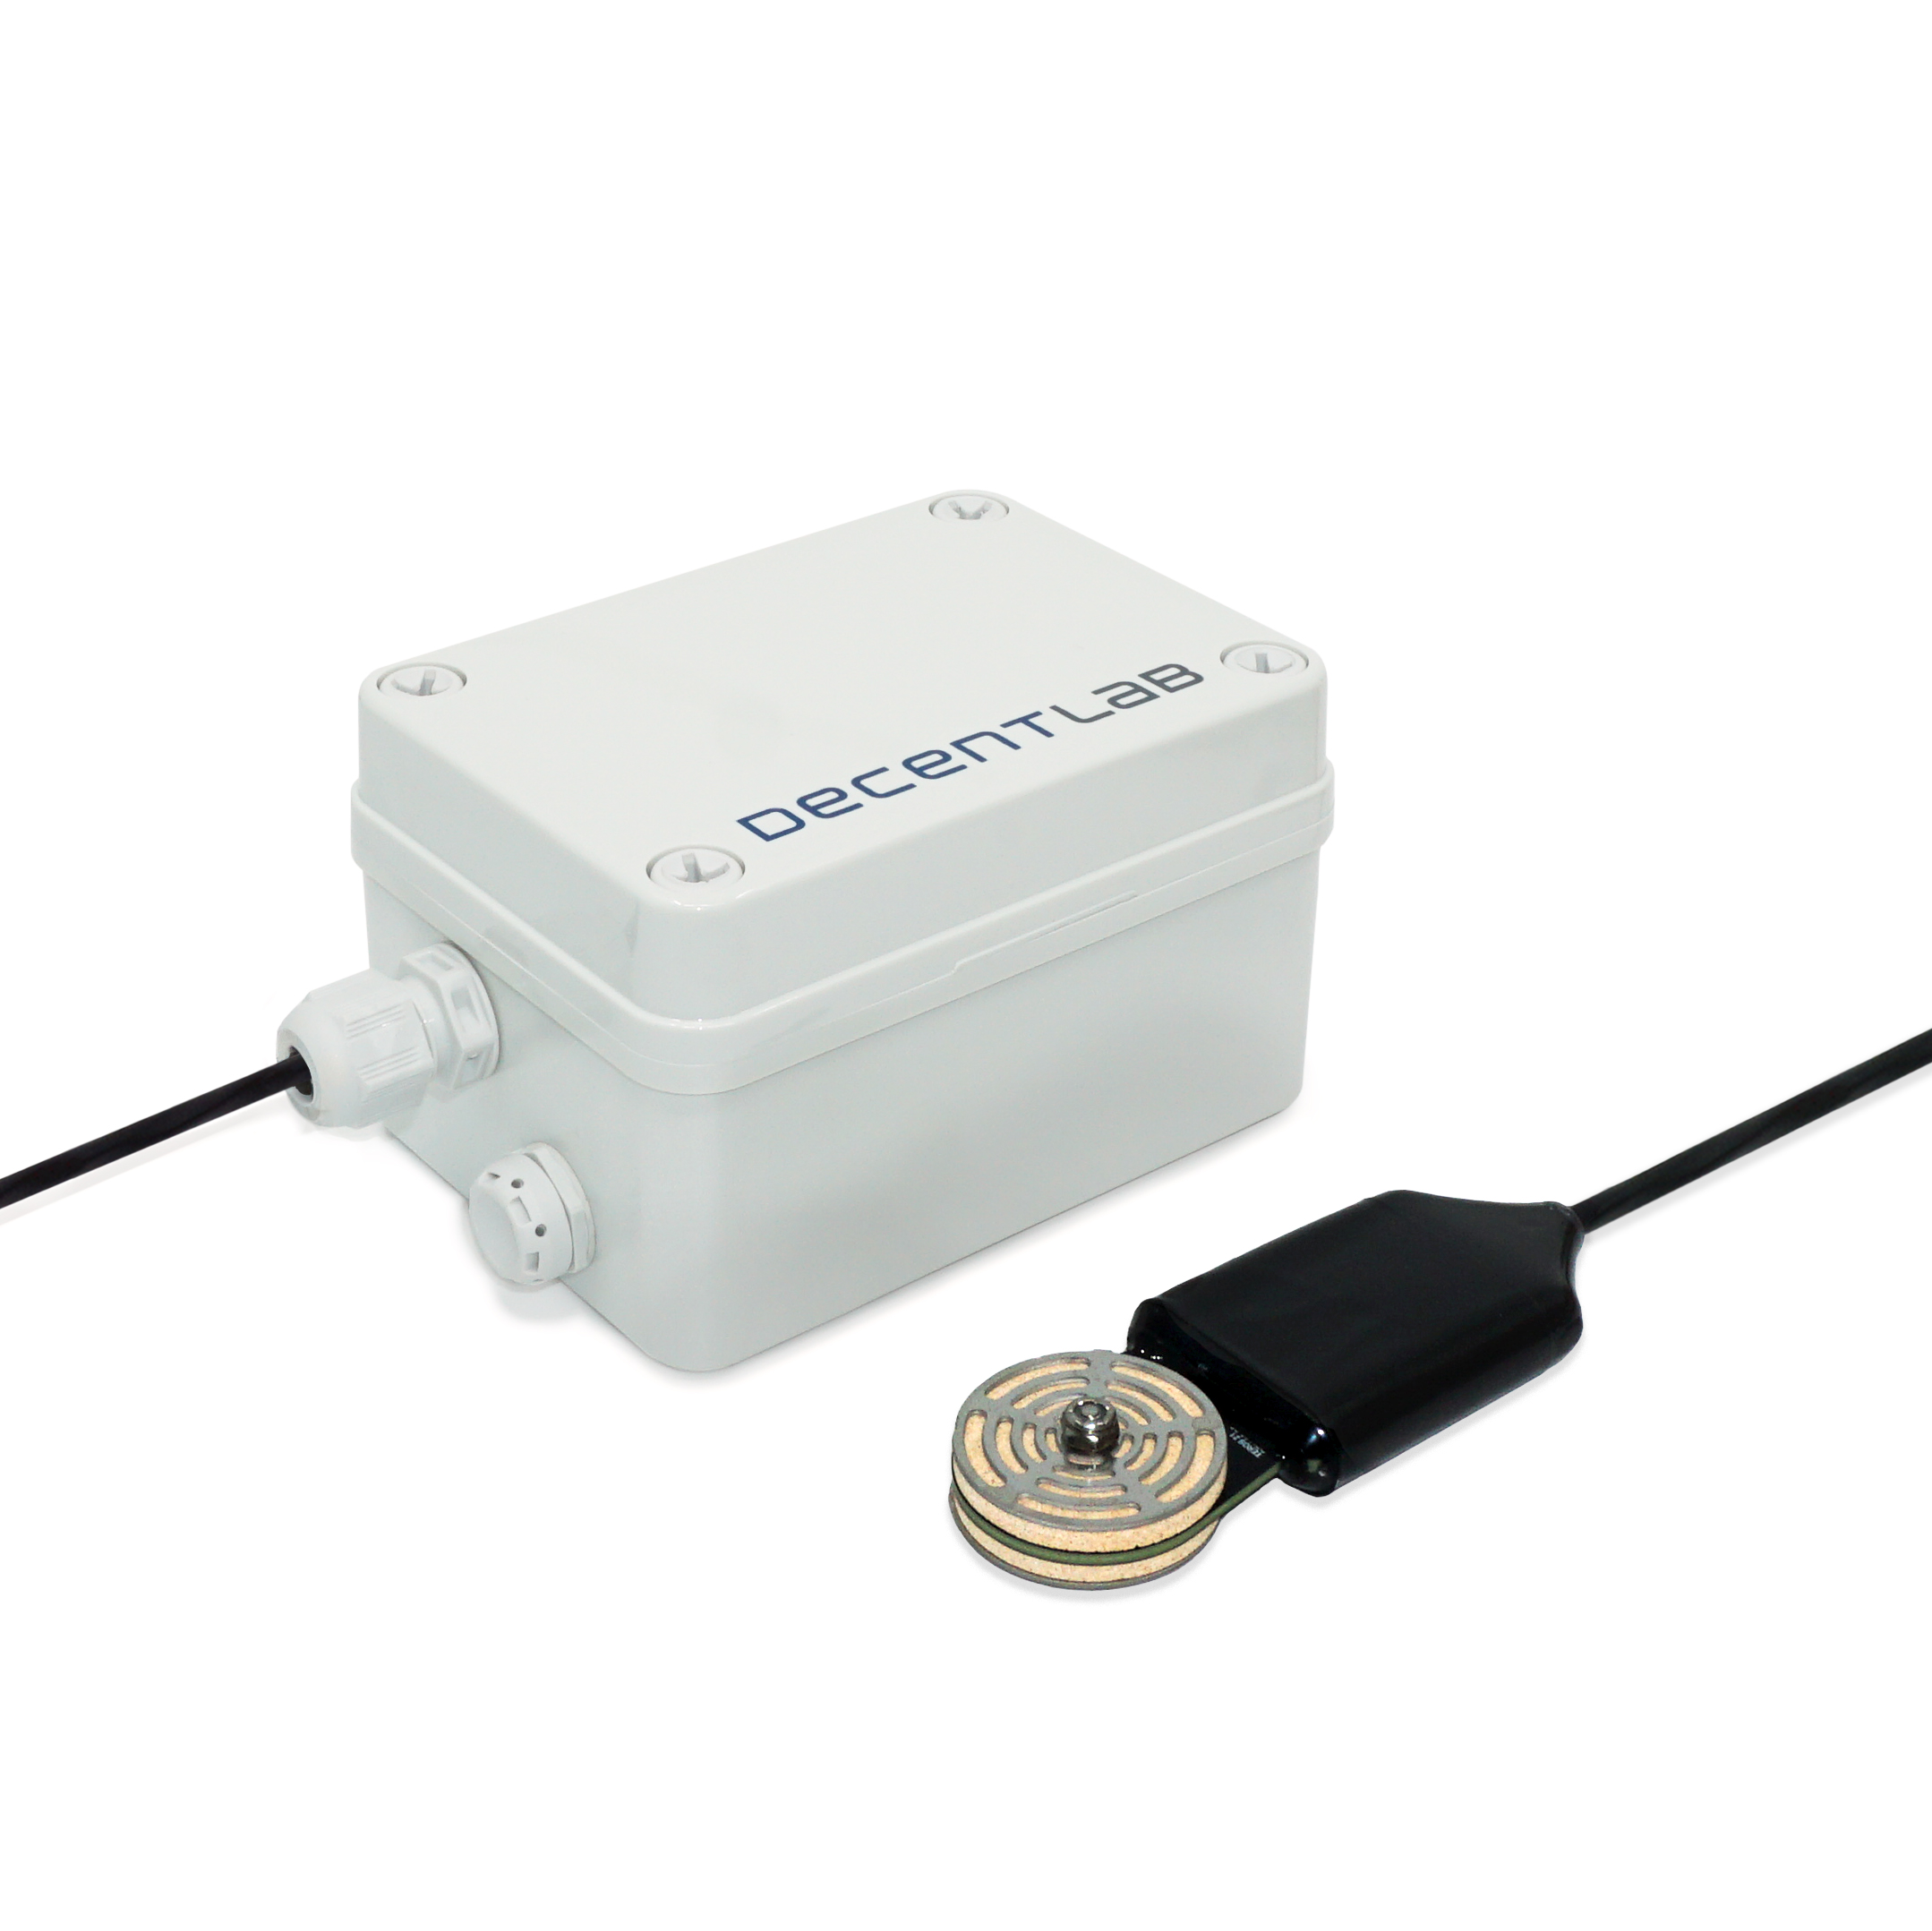 Copy of Soil Water Potential and Temperature Sensor for LoRaWAN™